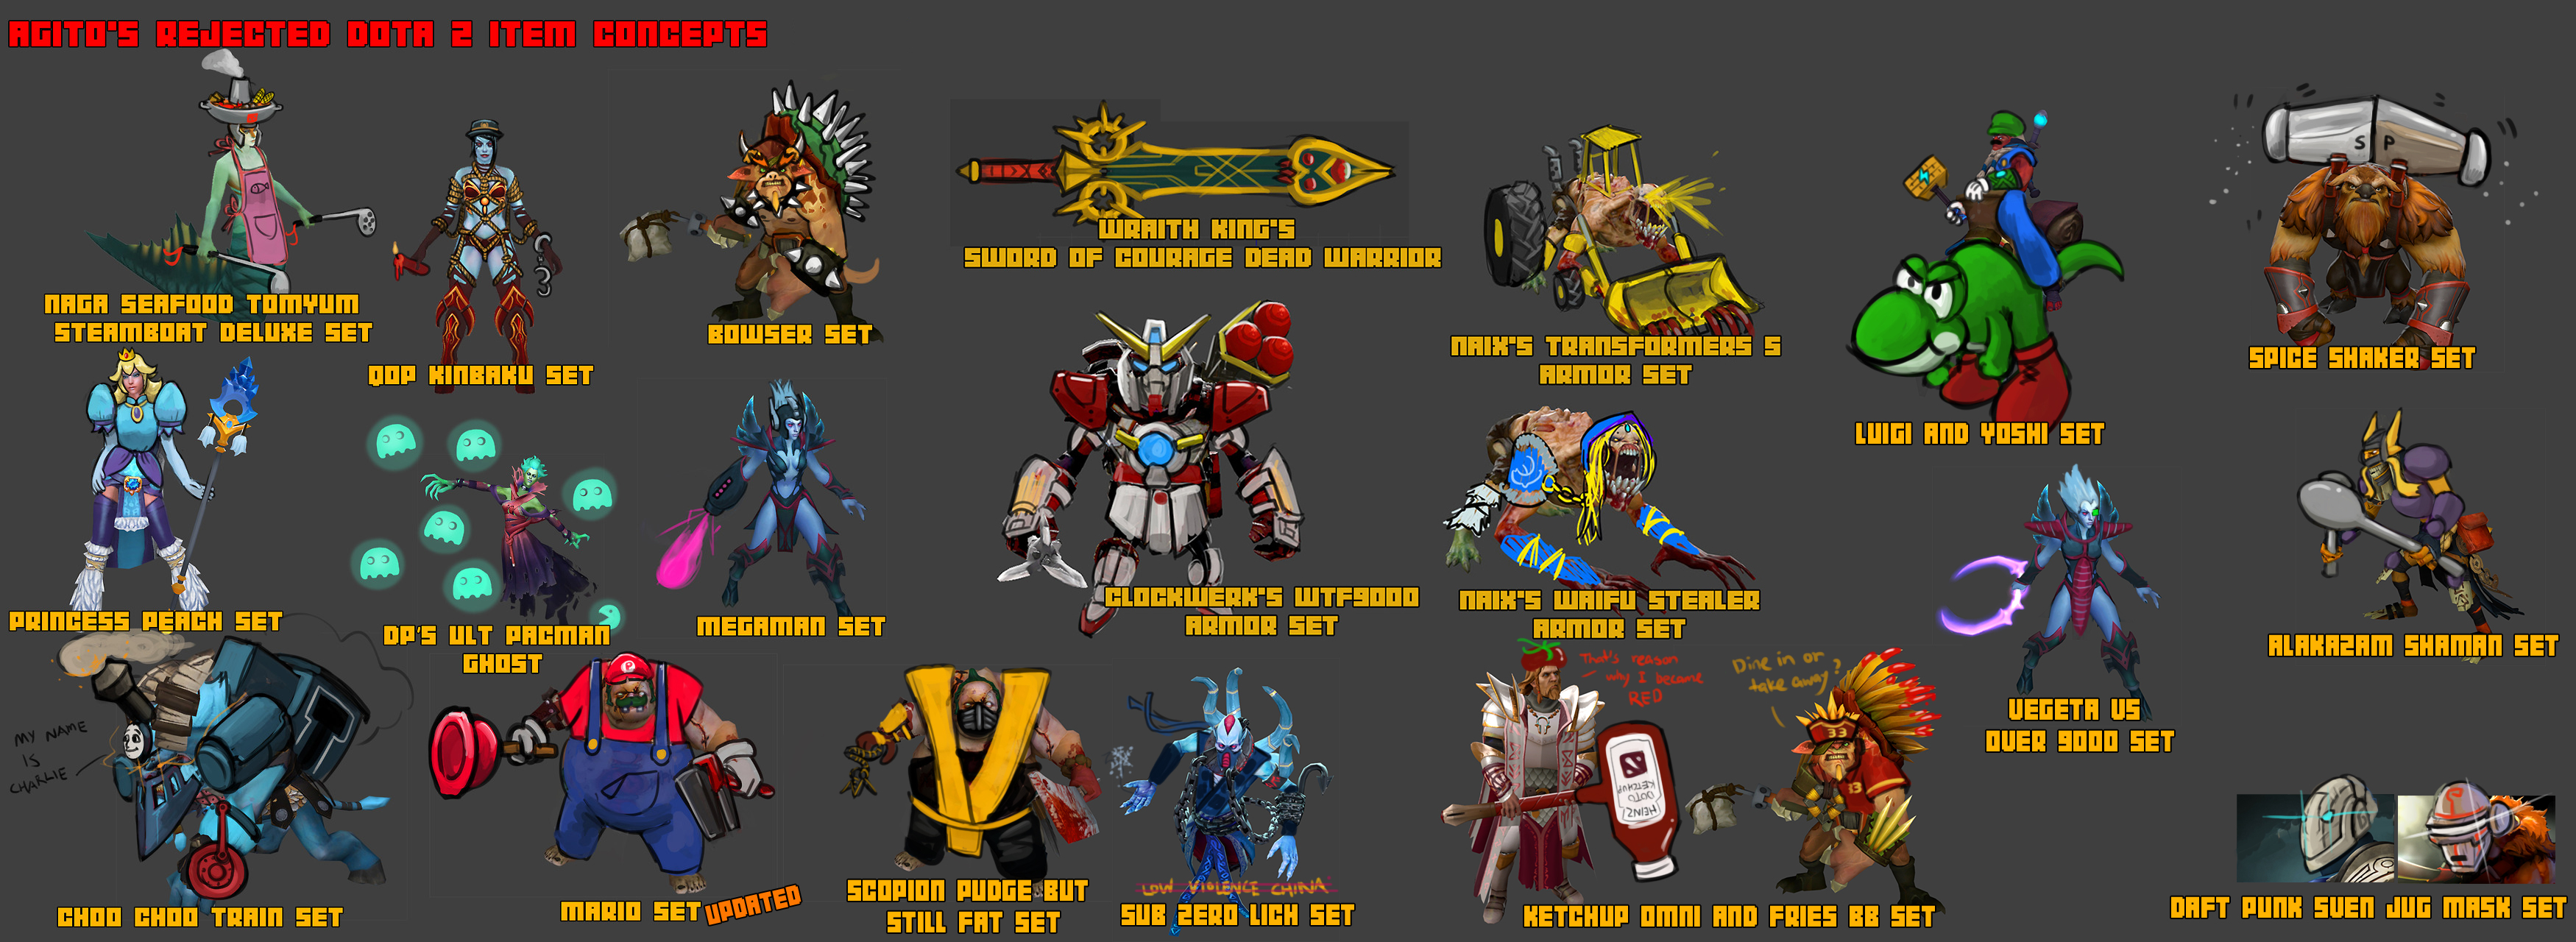 0499 agito s rejected workshop concepts by agito666 on deviantart